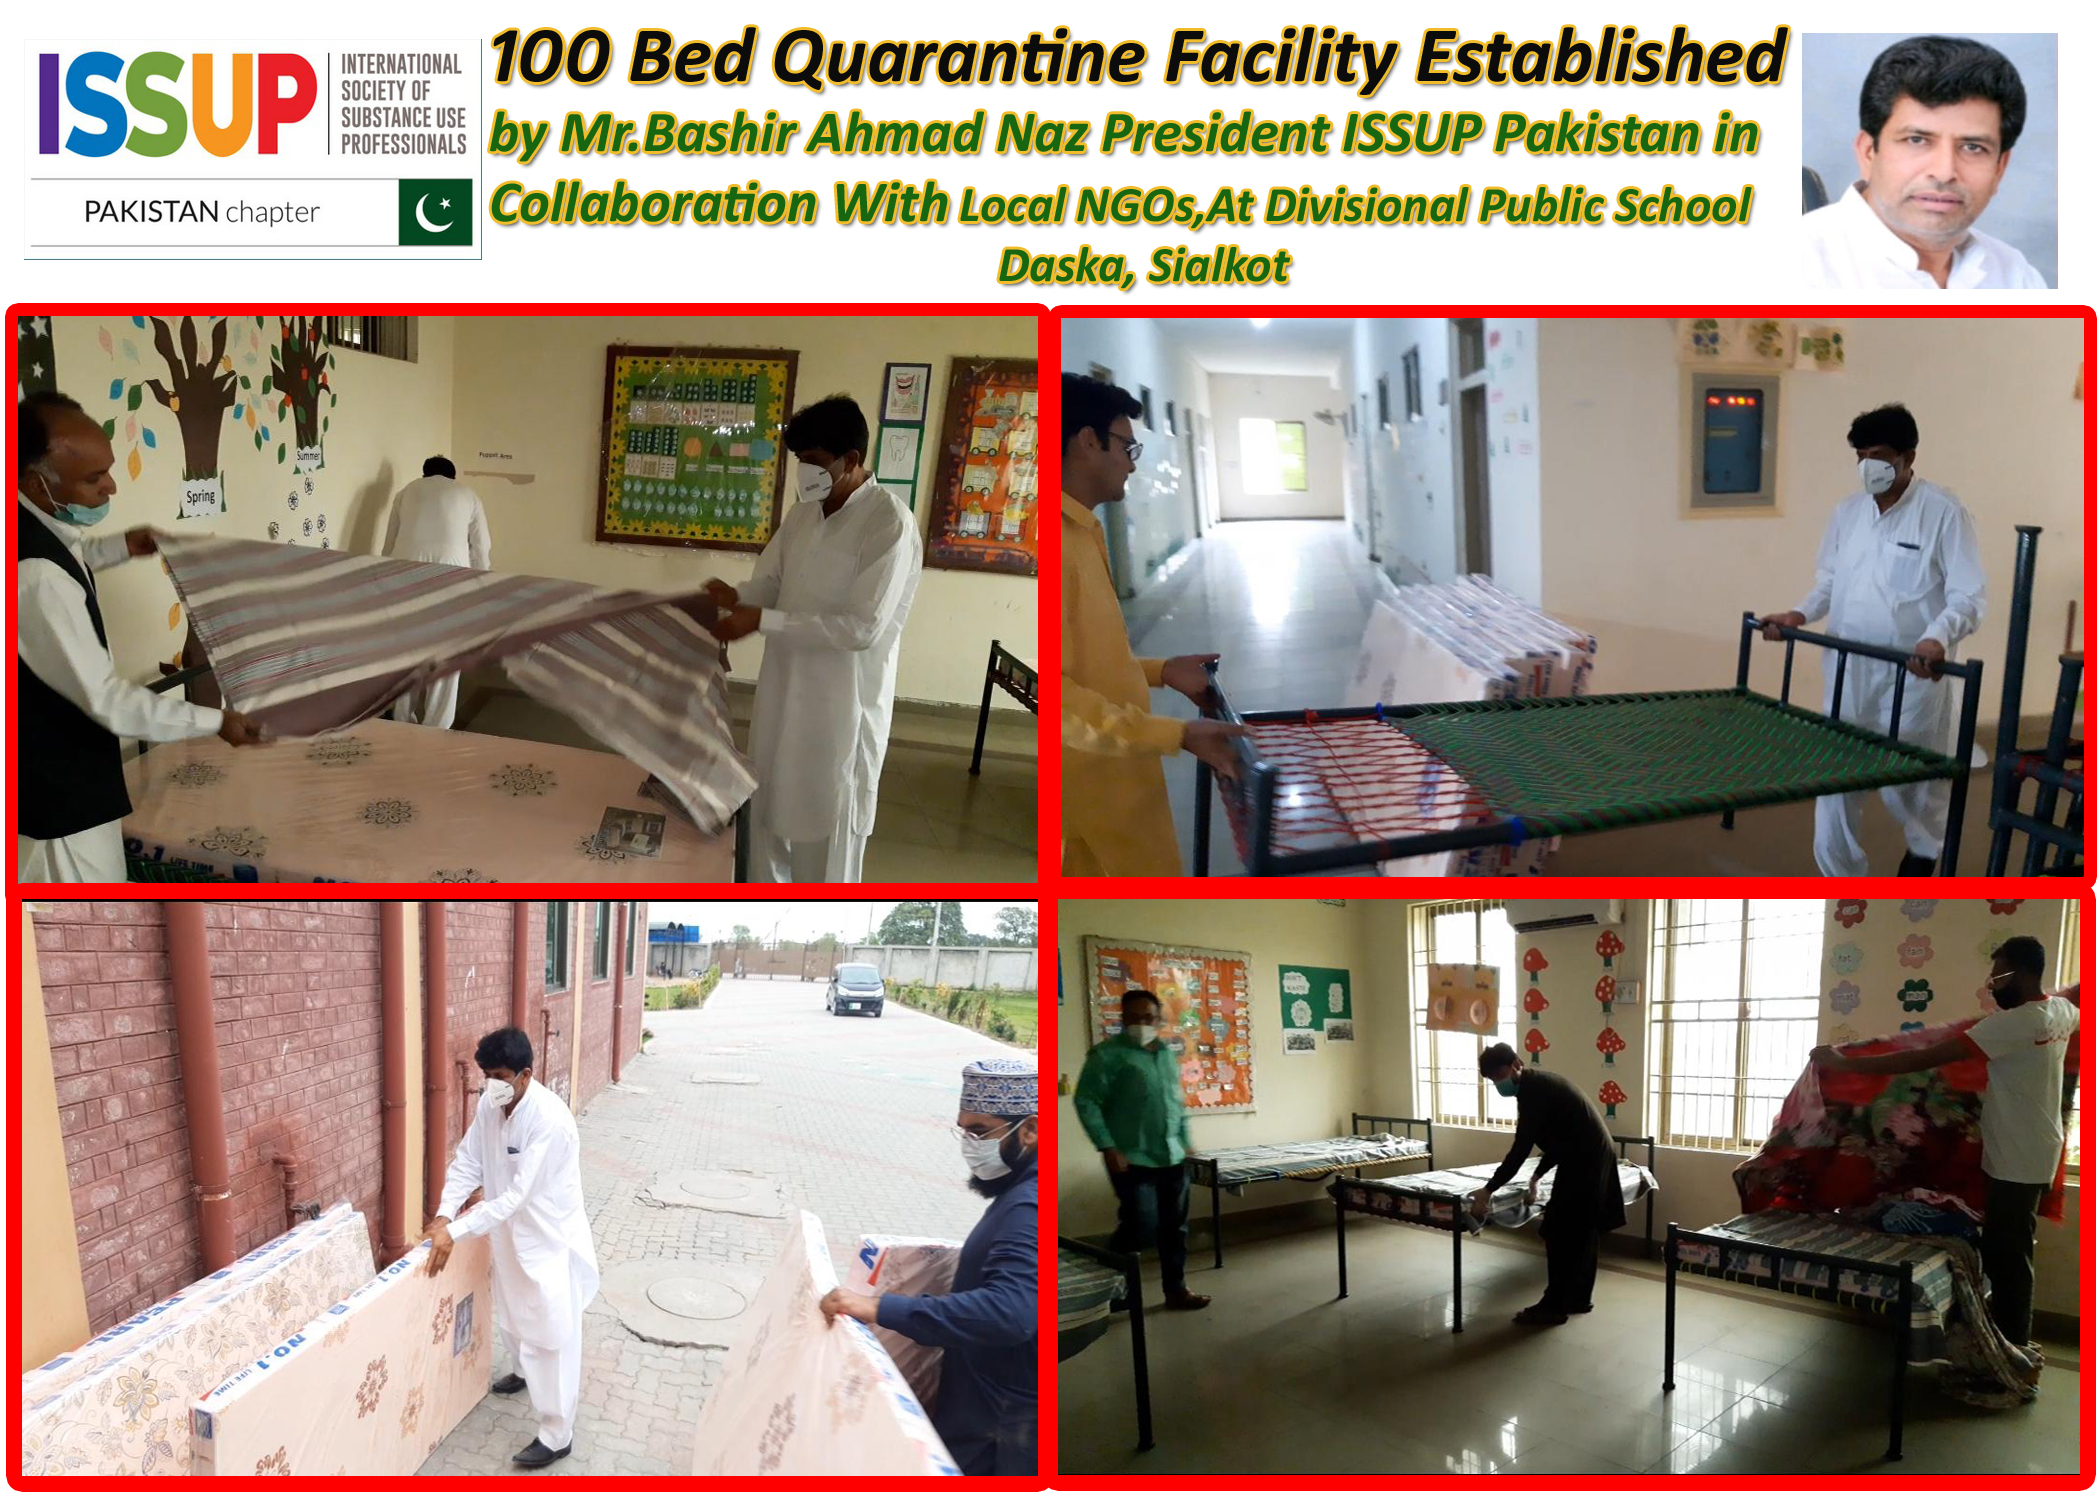 President ISSUP Pakistan In Collaboration of Local NGOs Established Corona Virus Quarantine 100 Bed Facility at DPS School, Daksa-Sialkot